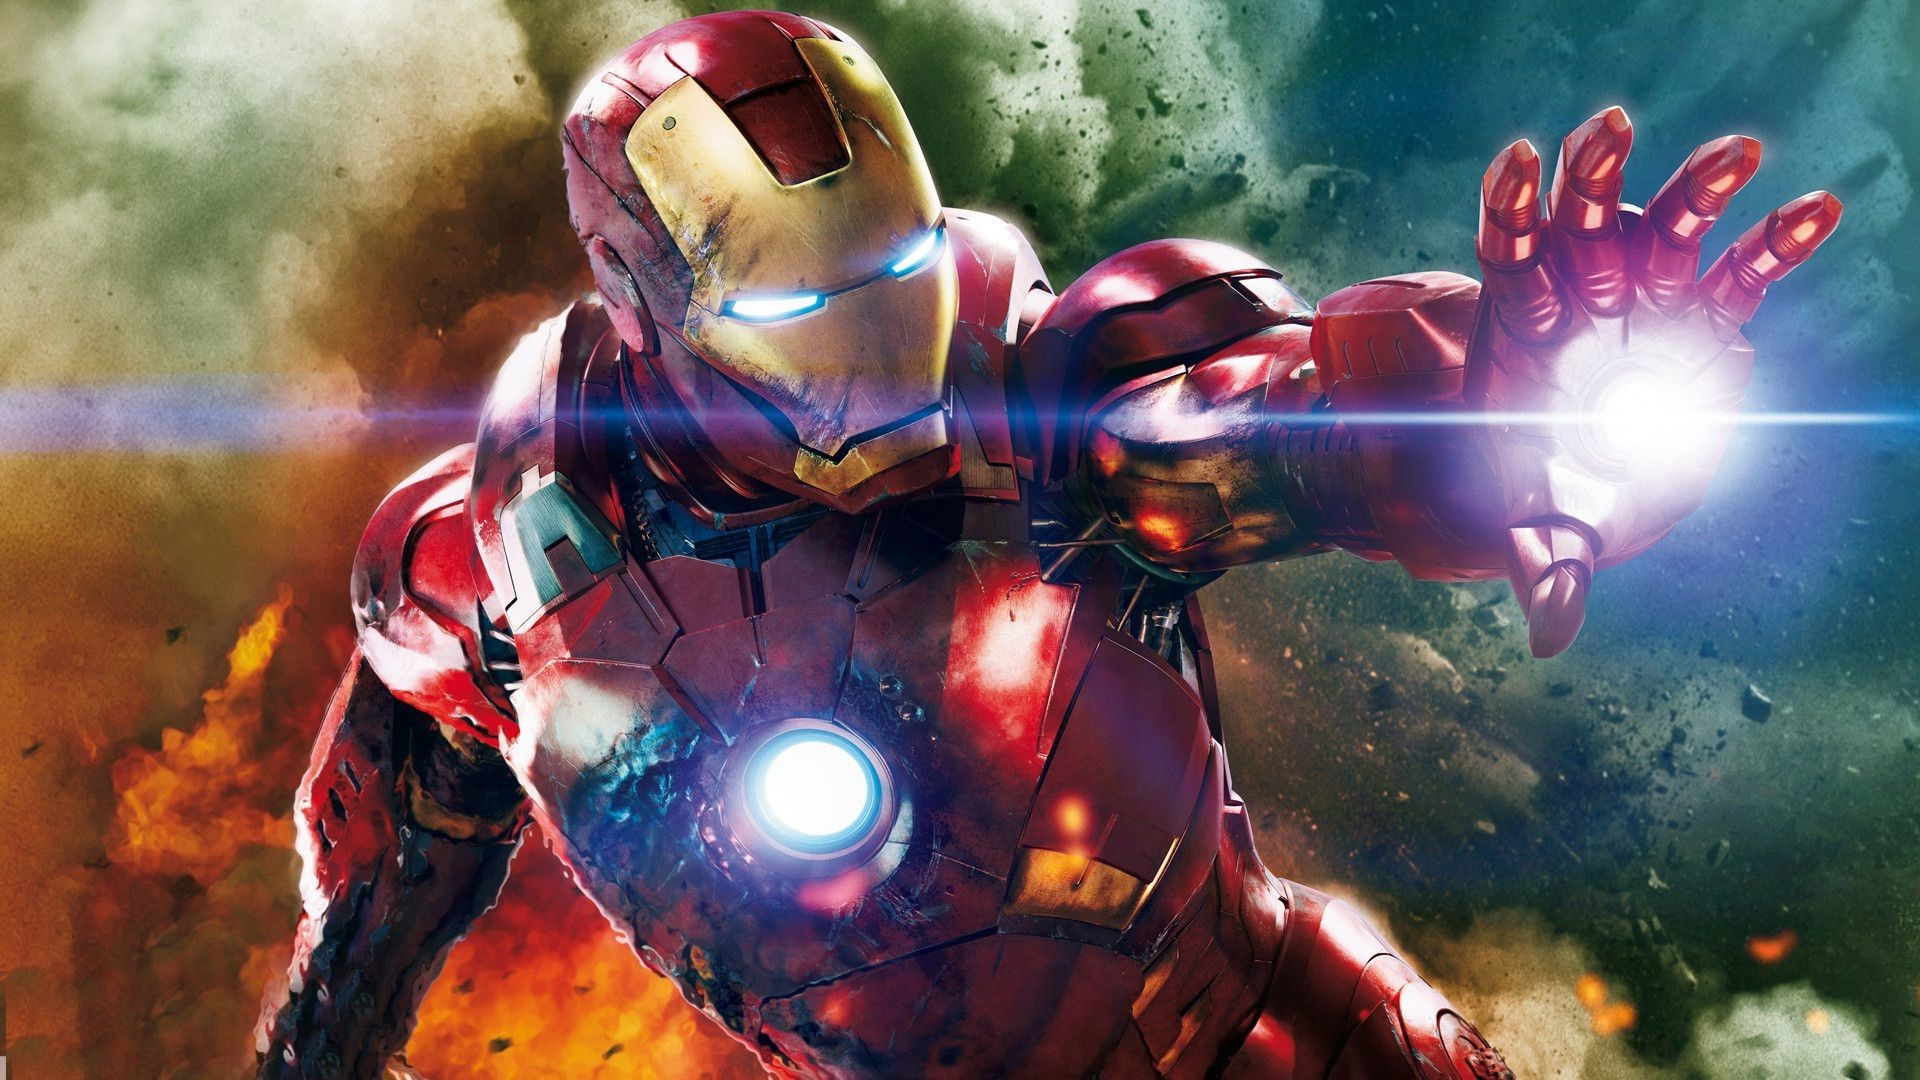 1920x1080 Collection of Iron Man Hd Wallpaper on Spyder Wallpapers